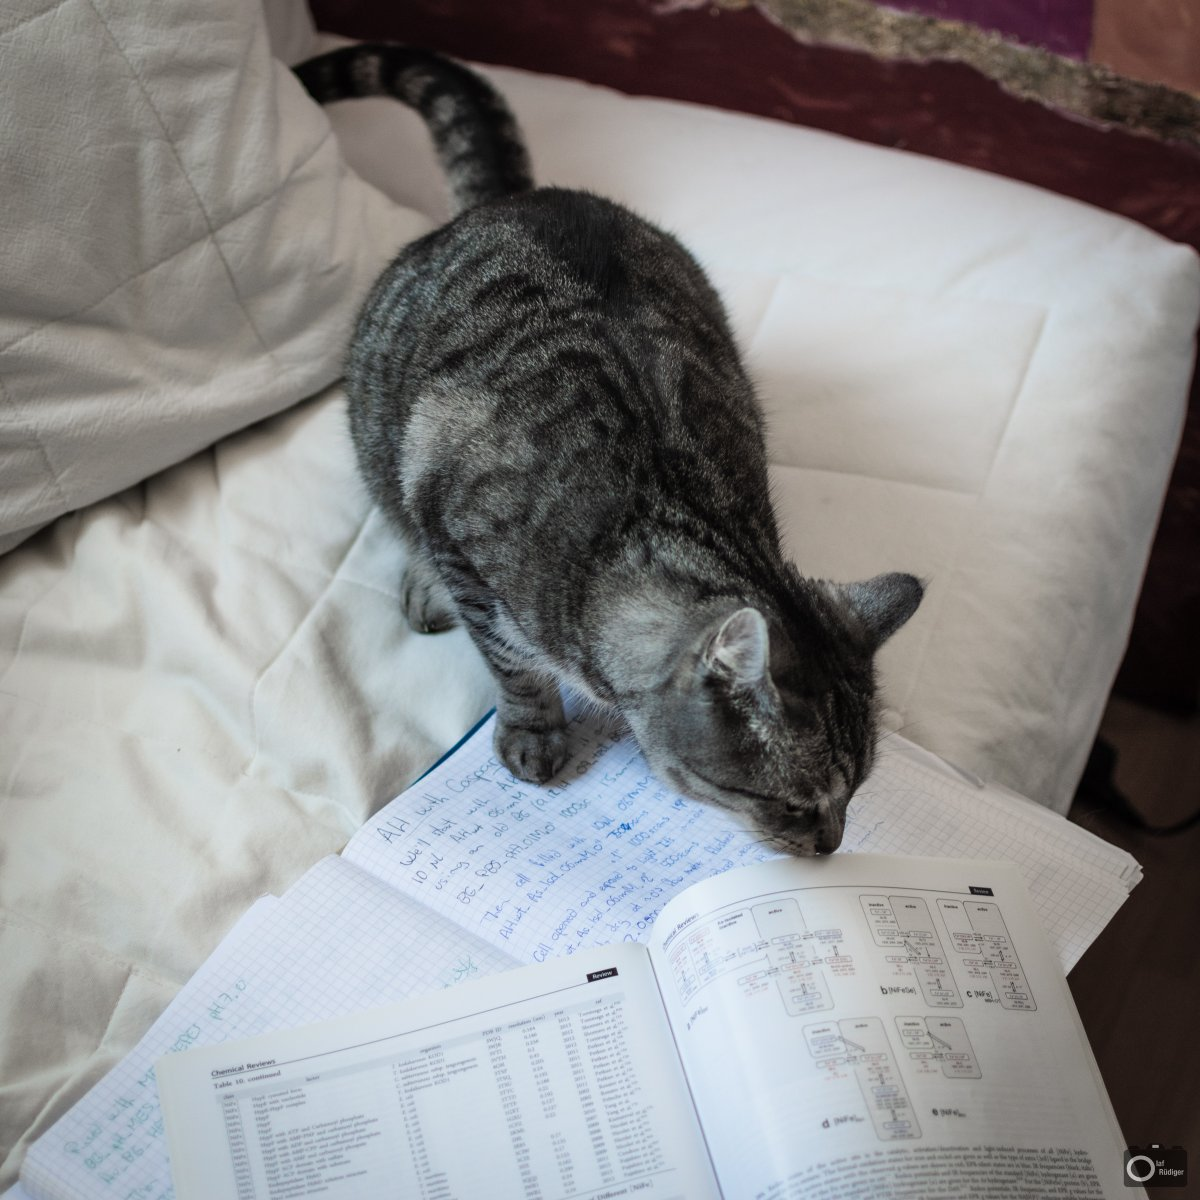 One week of home office, my cat is trying to bring new ideas to the hydrogenase wrold.